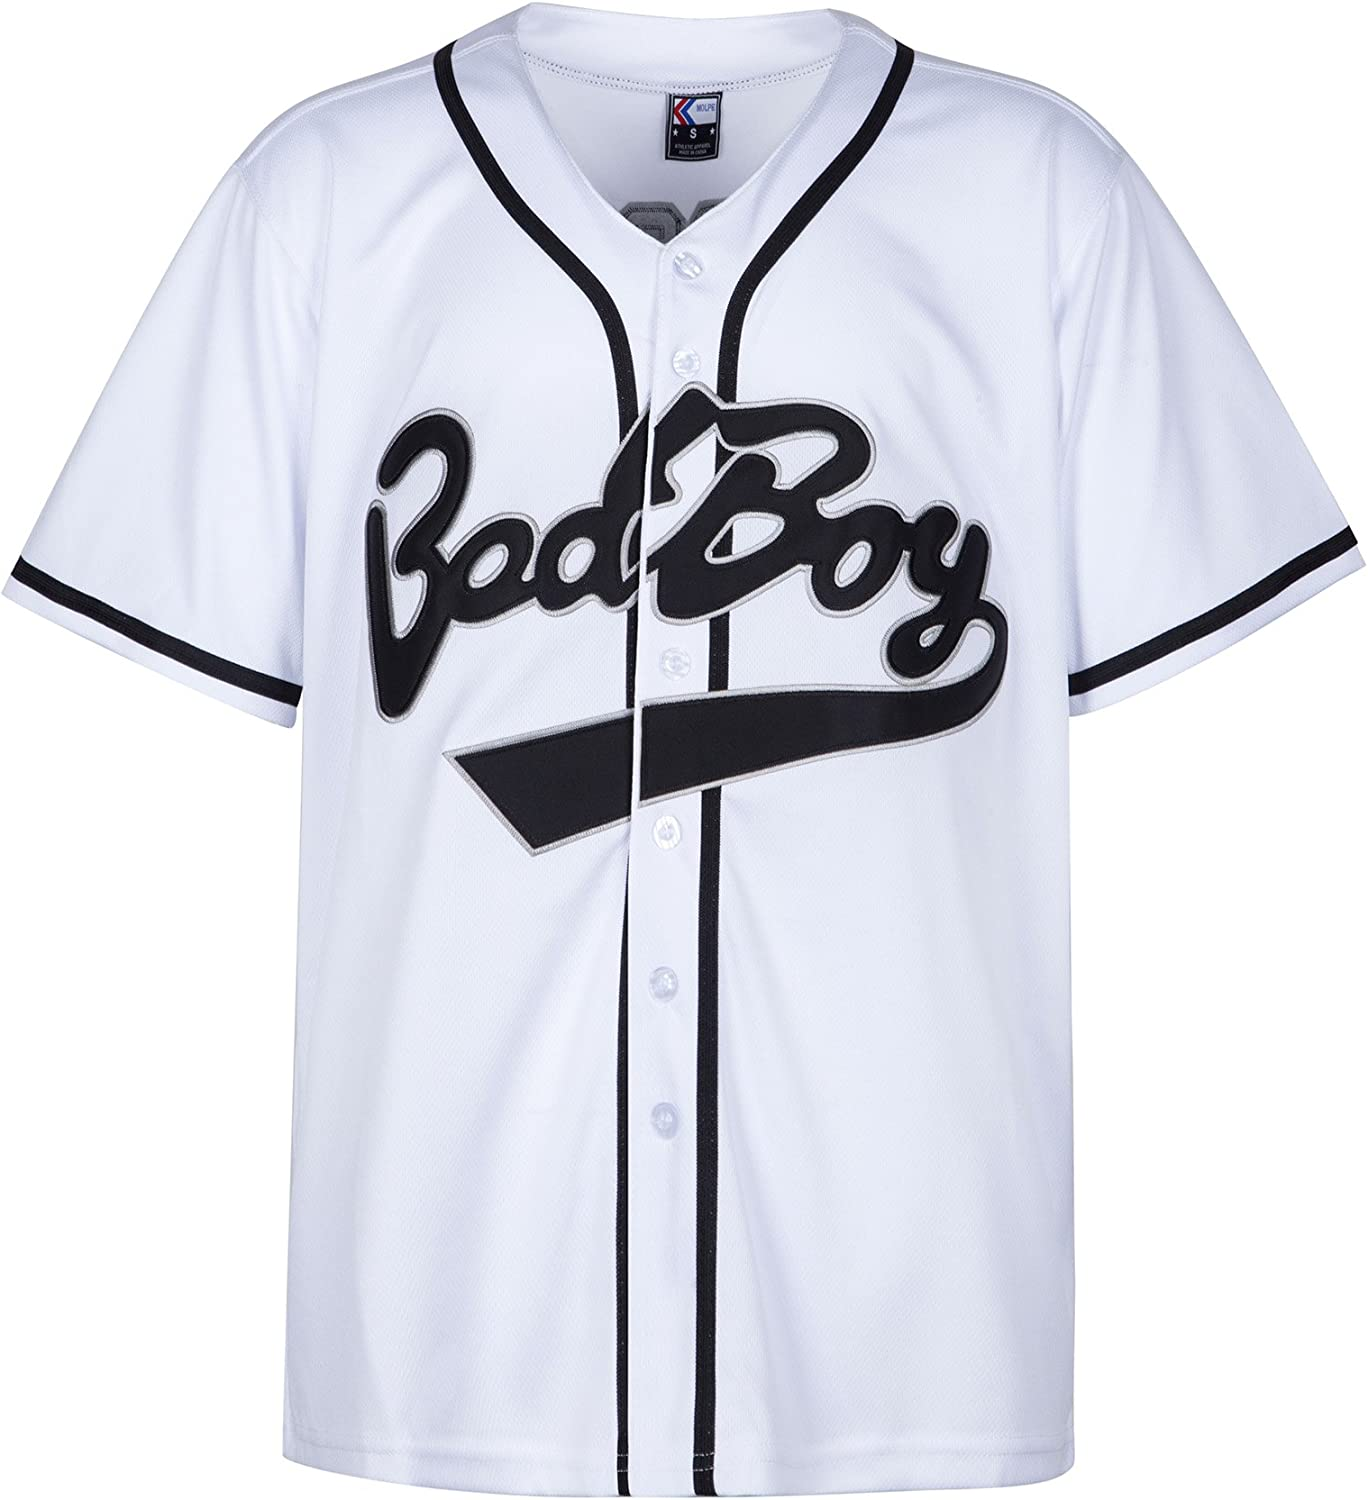 MOLPE Badboy #10 Biggie Baseball Jersey S-XXXL White Stitched Letters and Numbers 90S Hip Hop Clothing for Party